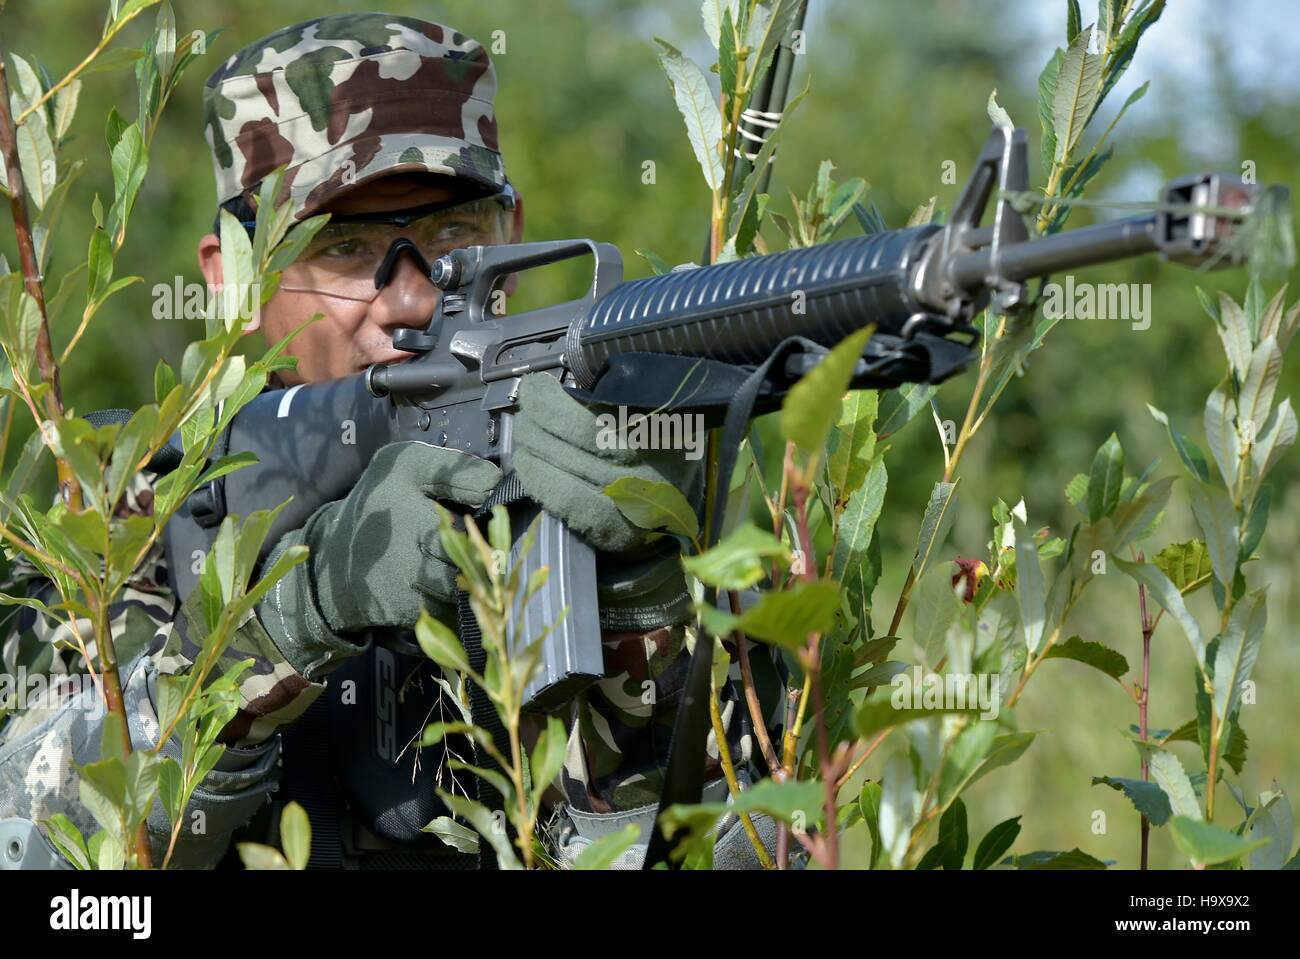 A Nepalese soldier participates in the Situational Training Exercise portion of the U.S. Army Alaska Warrior Leader - Stock Image